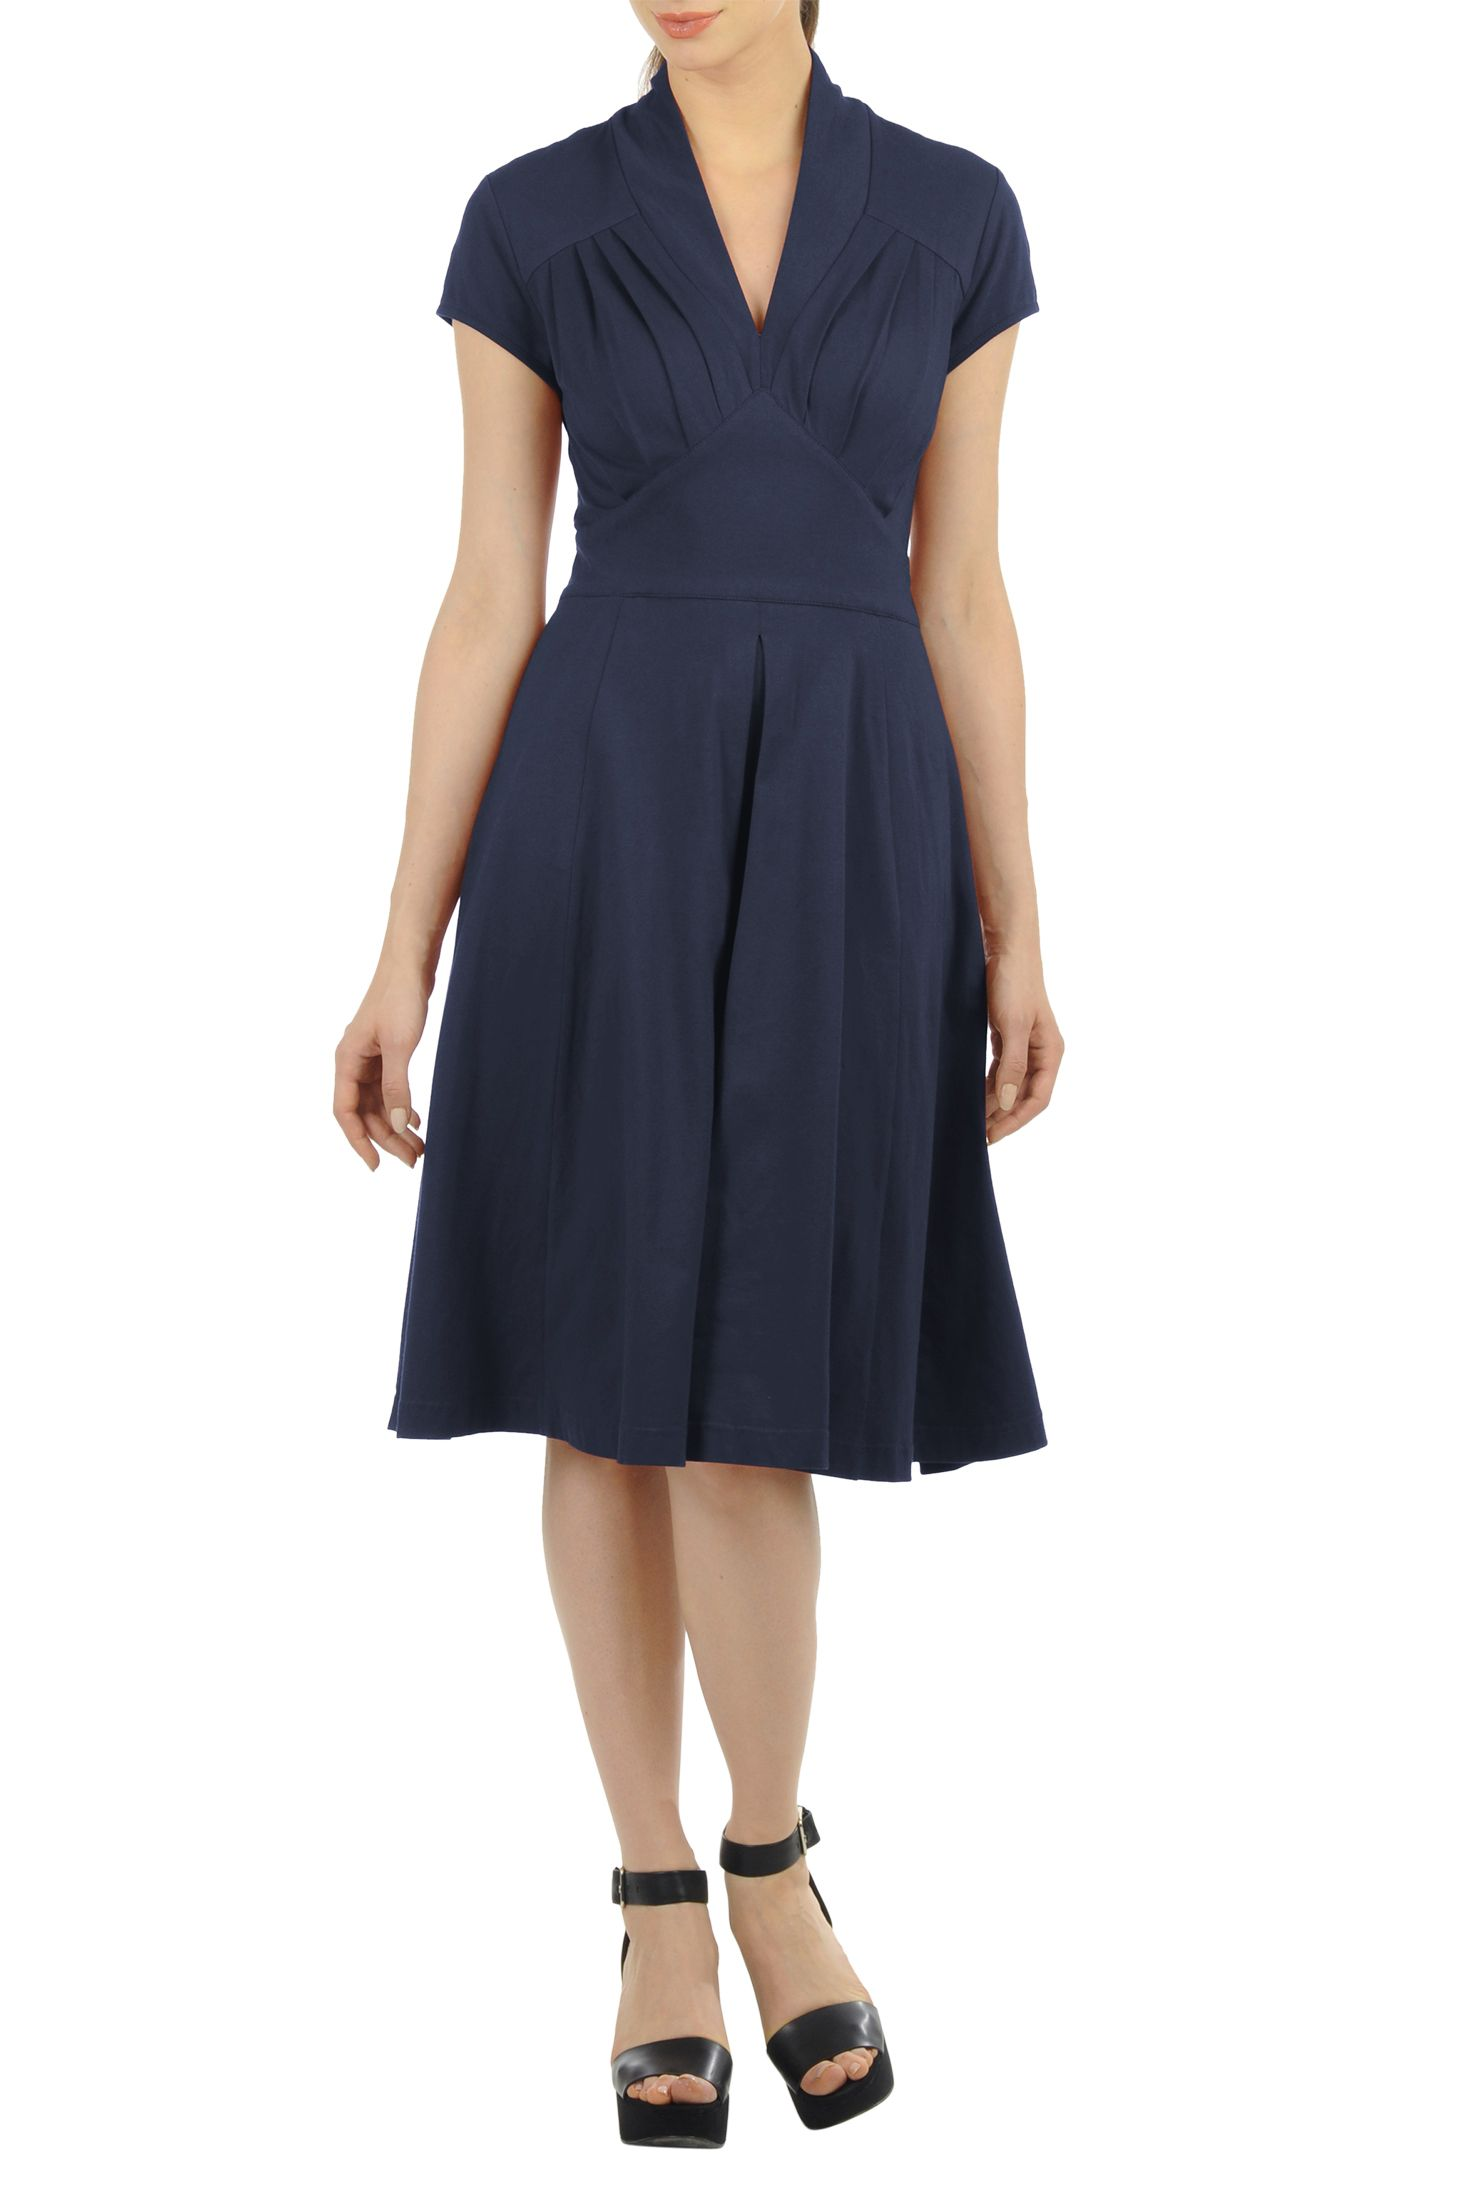 Soft cotton knit falls gracefully into the pleated bodice